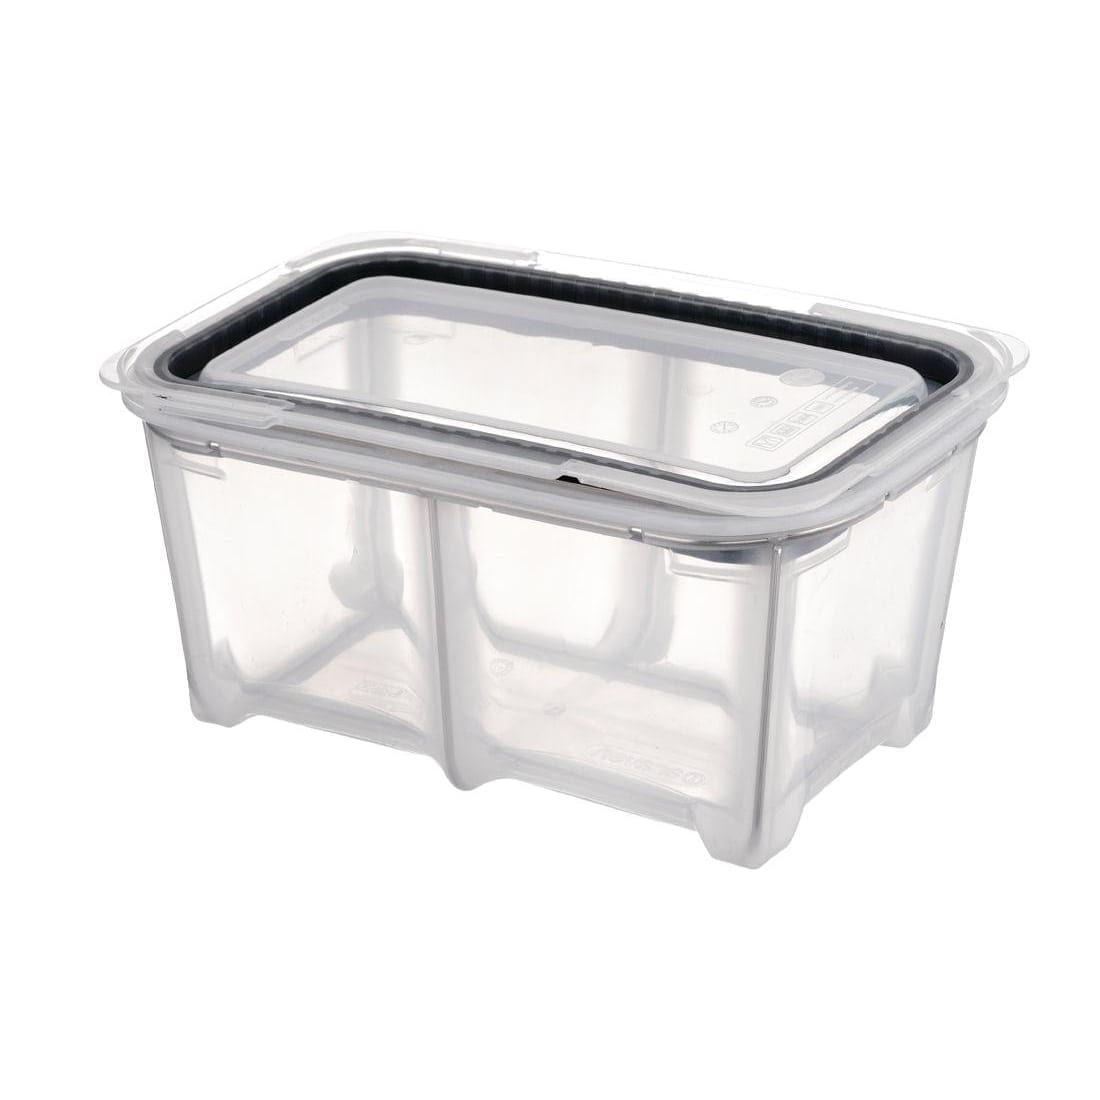 Araven Silicone Container GN - 1/3 5.2Ltr & Airtight Lid-0